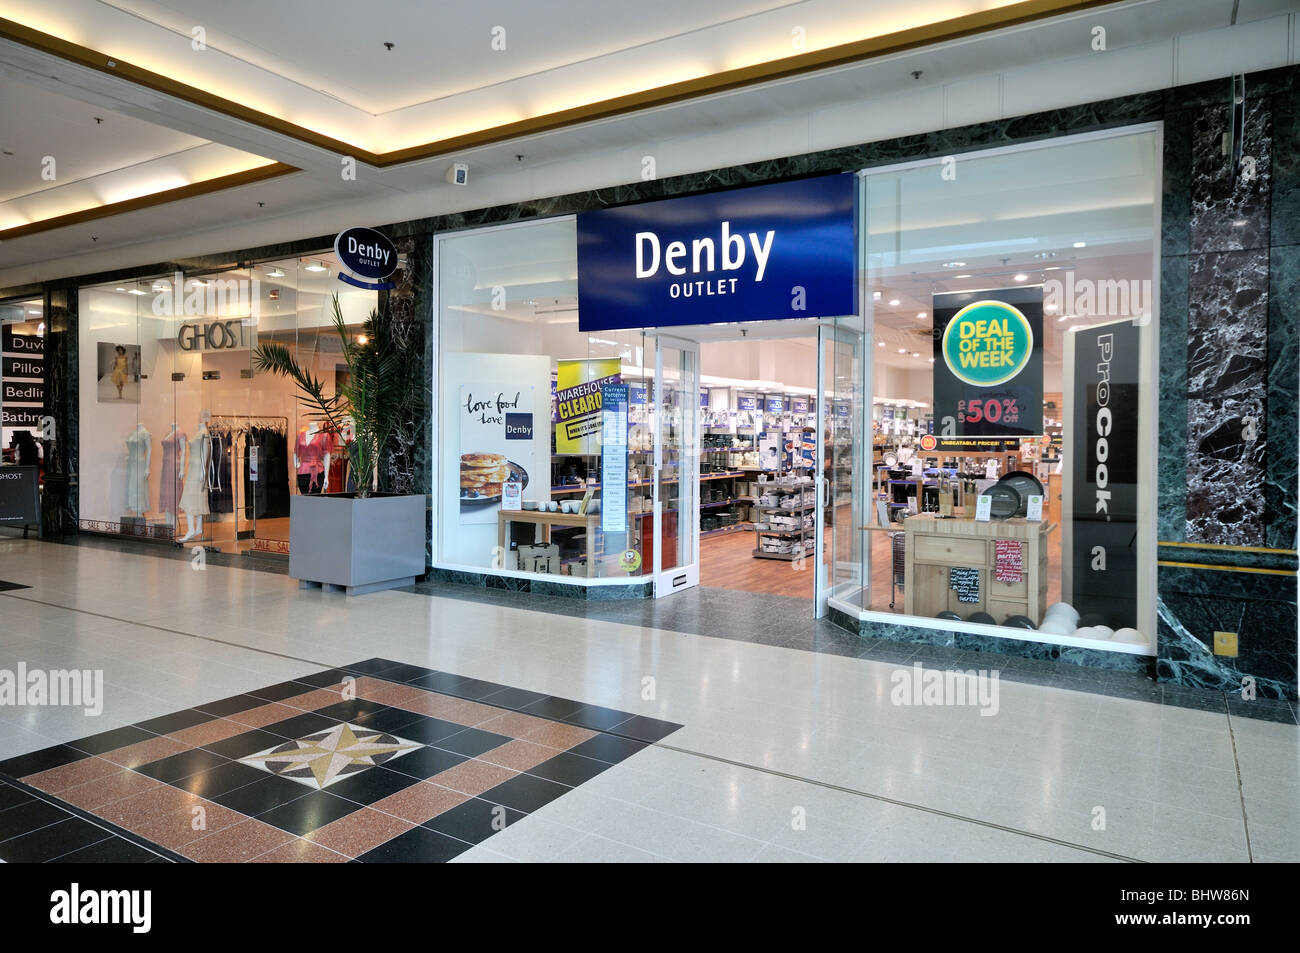 Denby Outlet Store - Stock Image